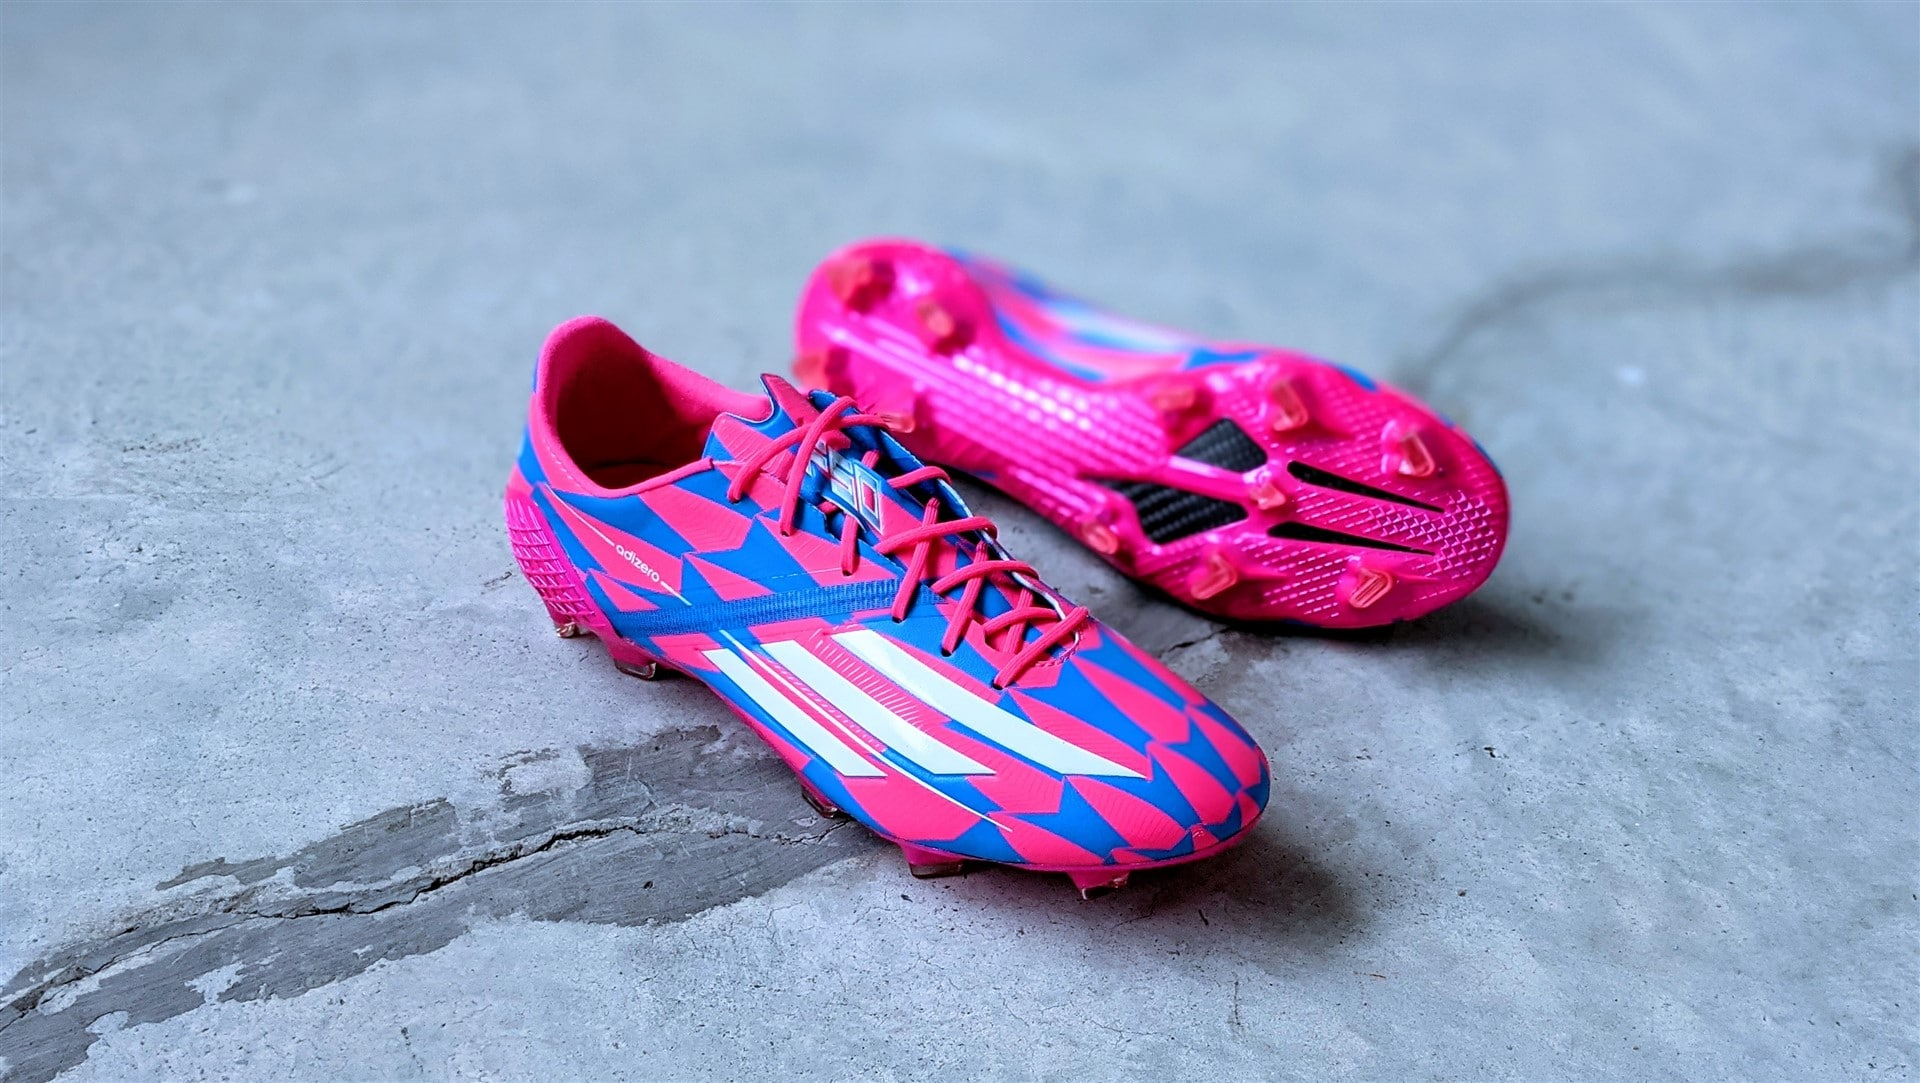 F50 Ghosted Adizero